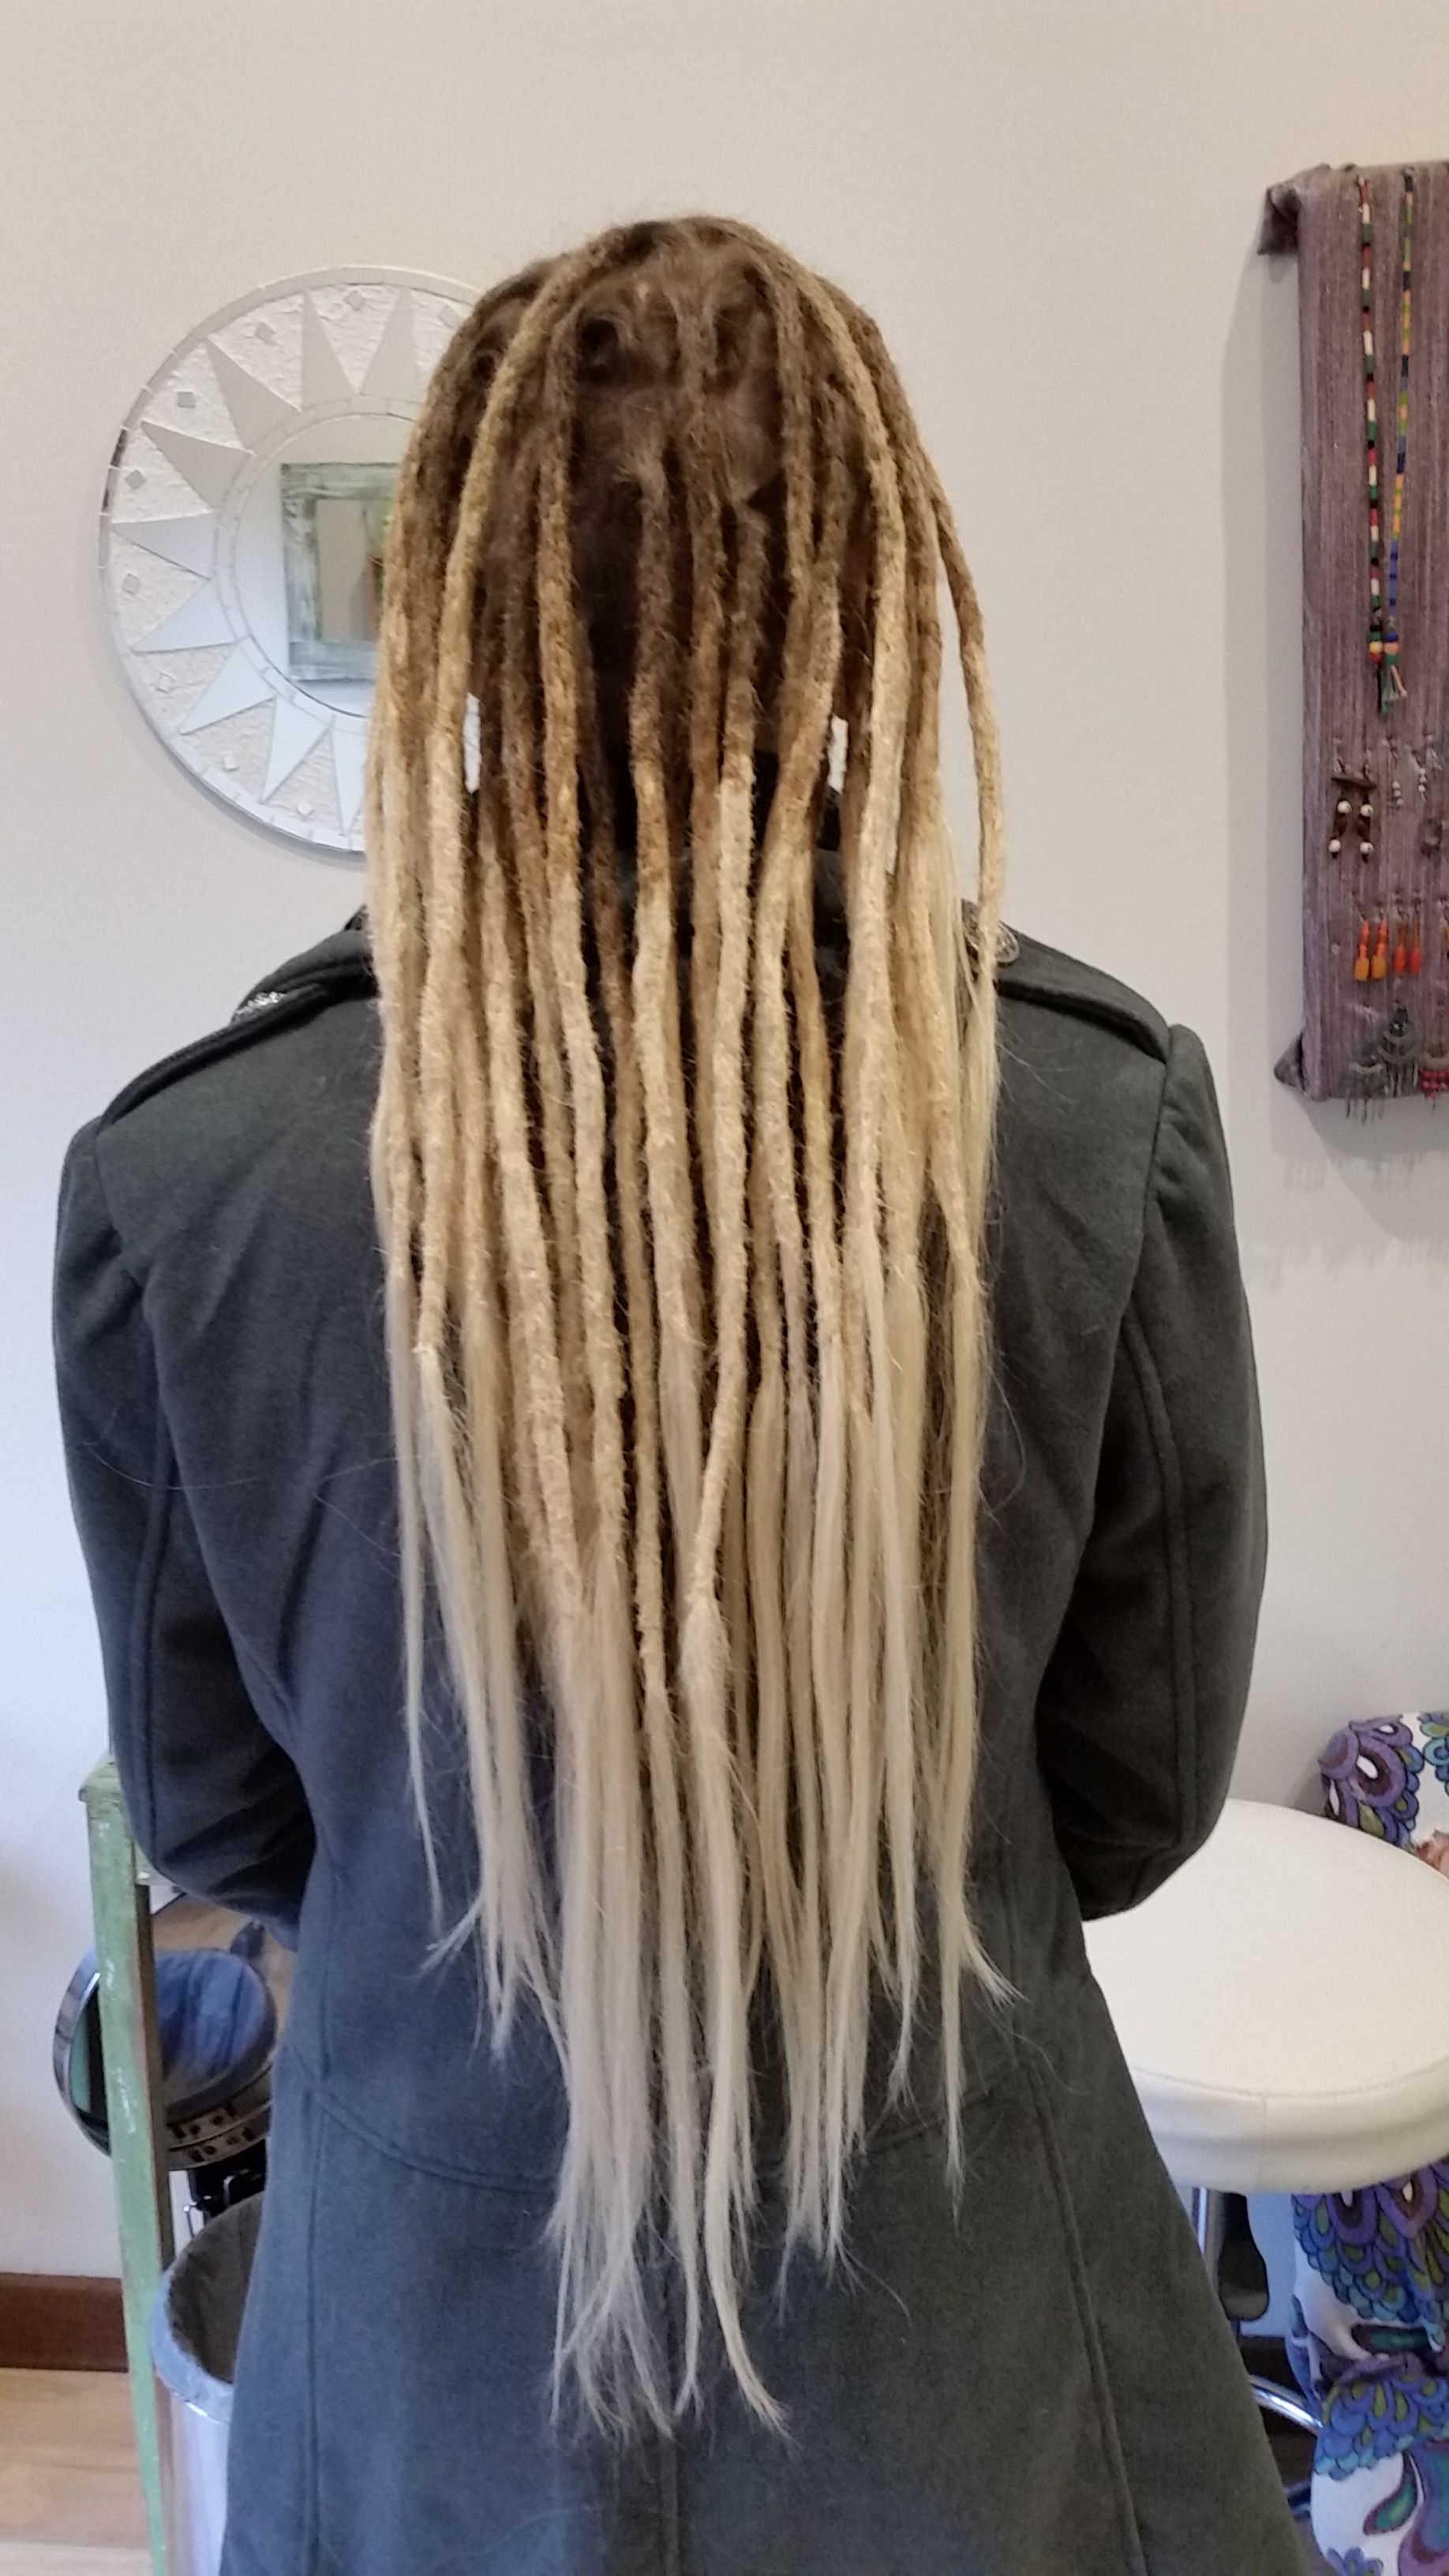 Dreadlock Extensions Create The Most Dramatic Changes For People And